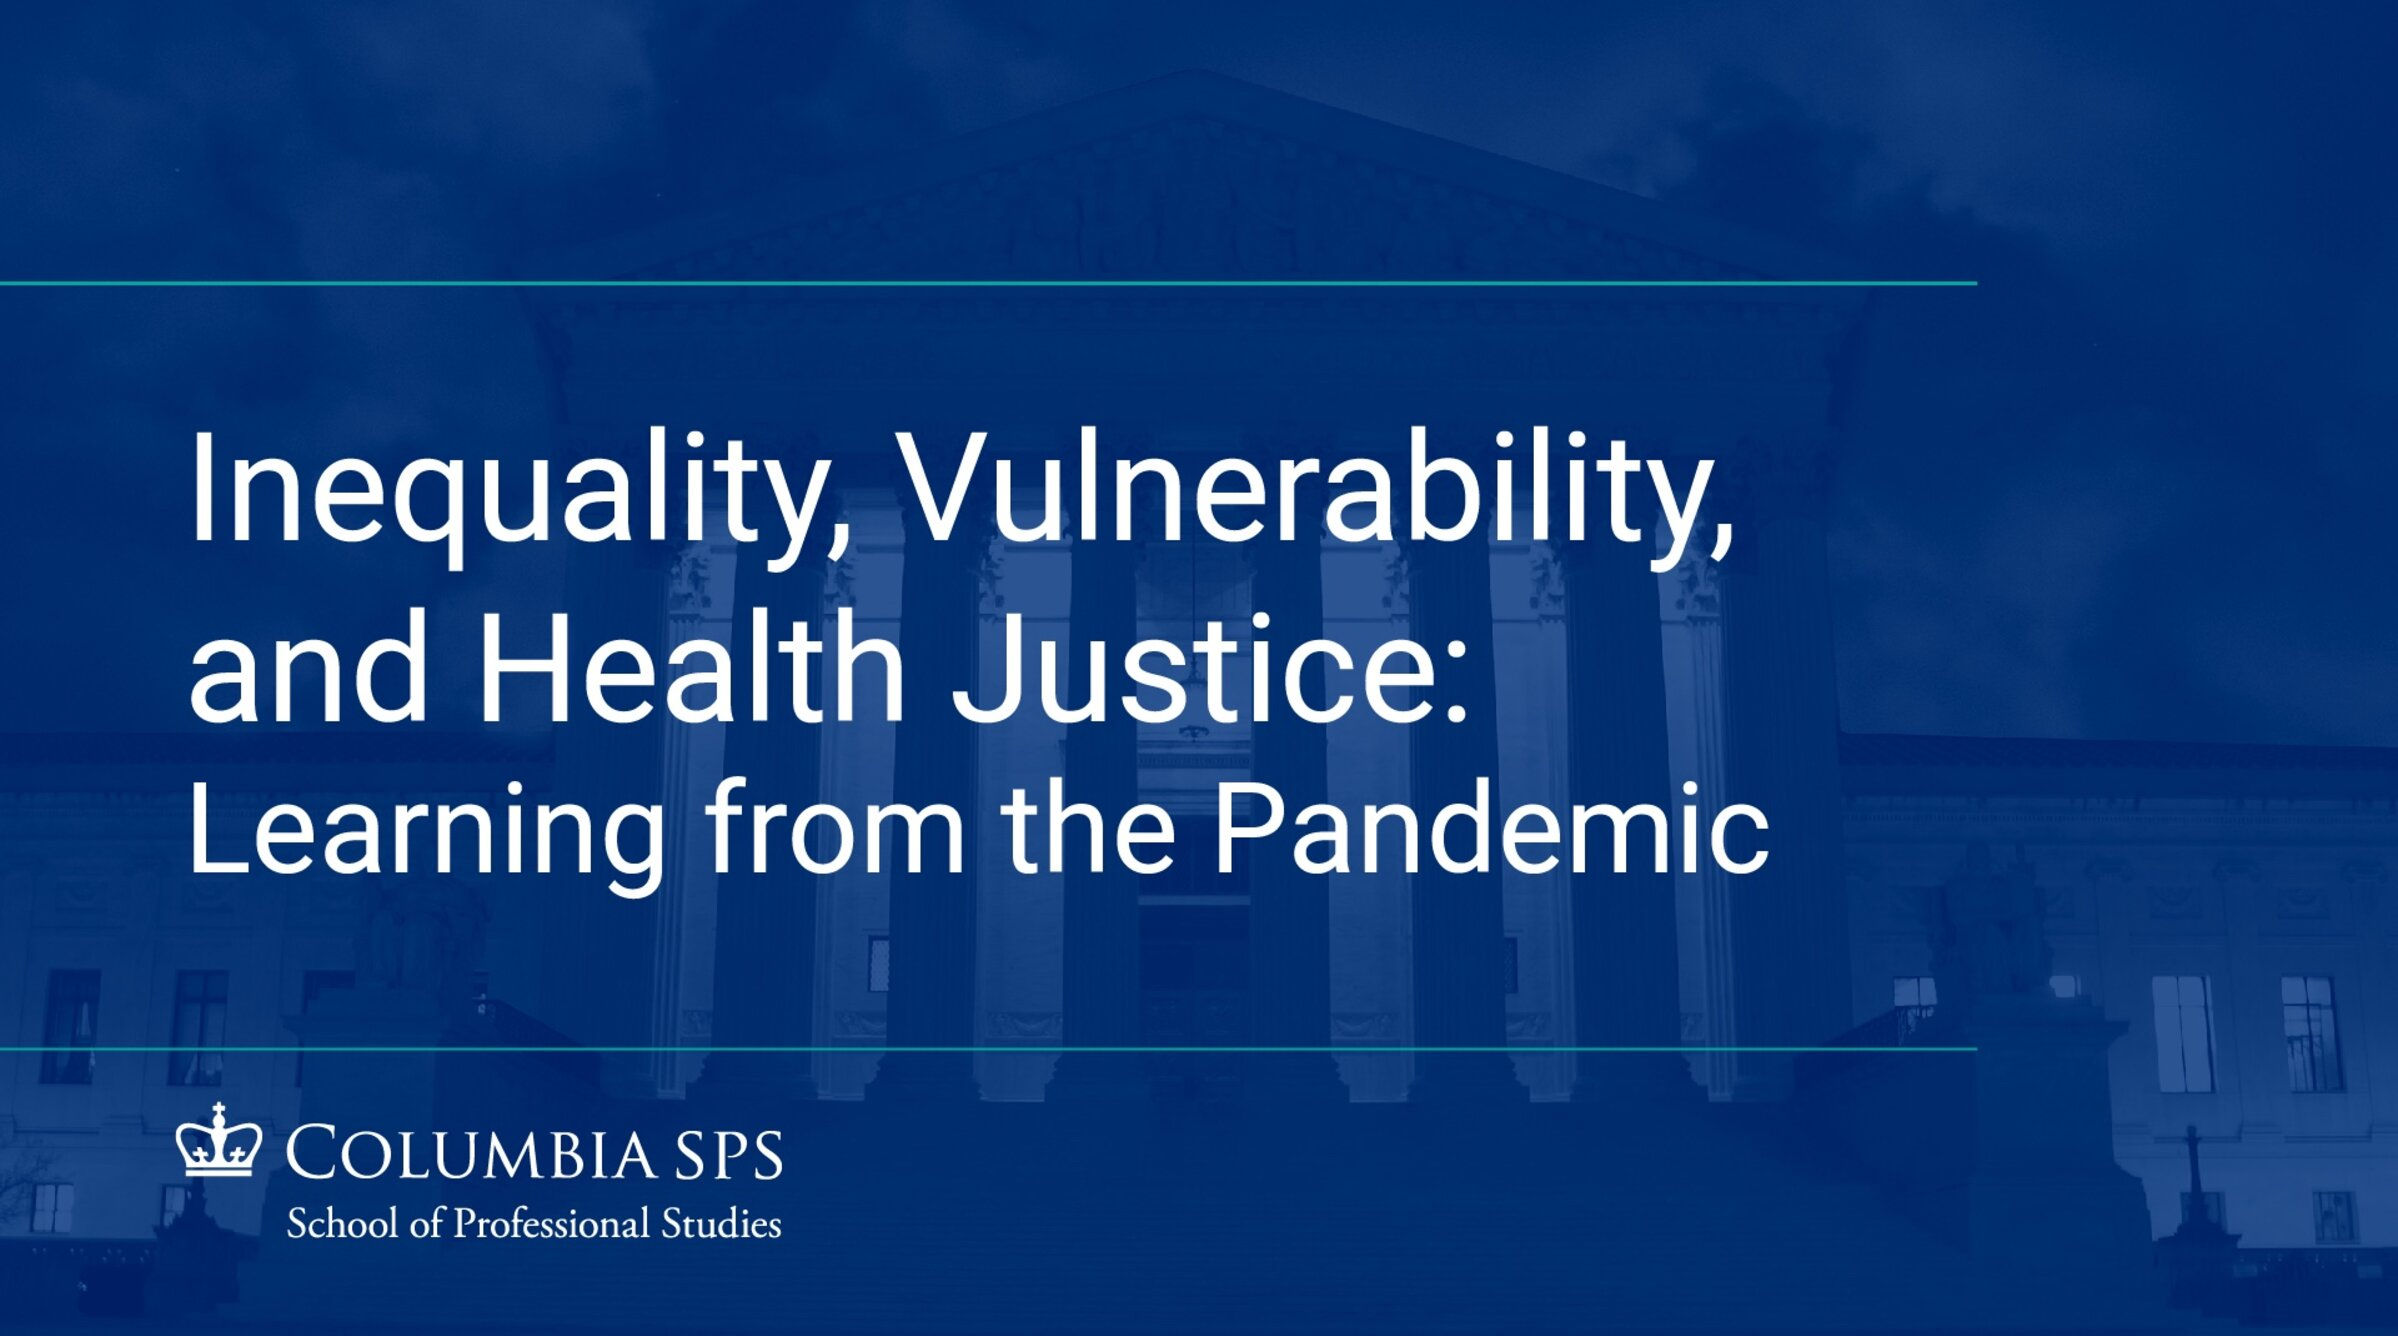 "A cover image for a recording of the Bioethics webinar on  ""Video Cover Image - Inequality, Vulnerability, and Health Justice: Learning from the Pandemic."""